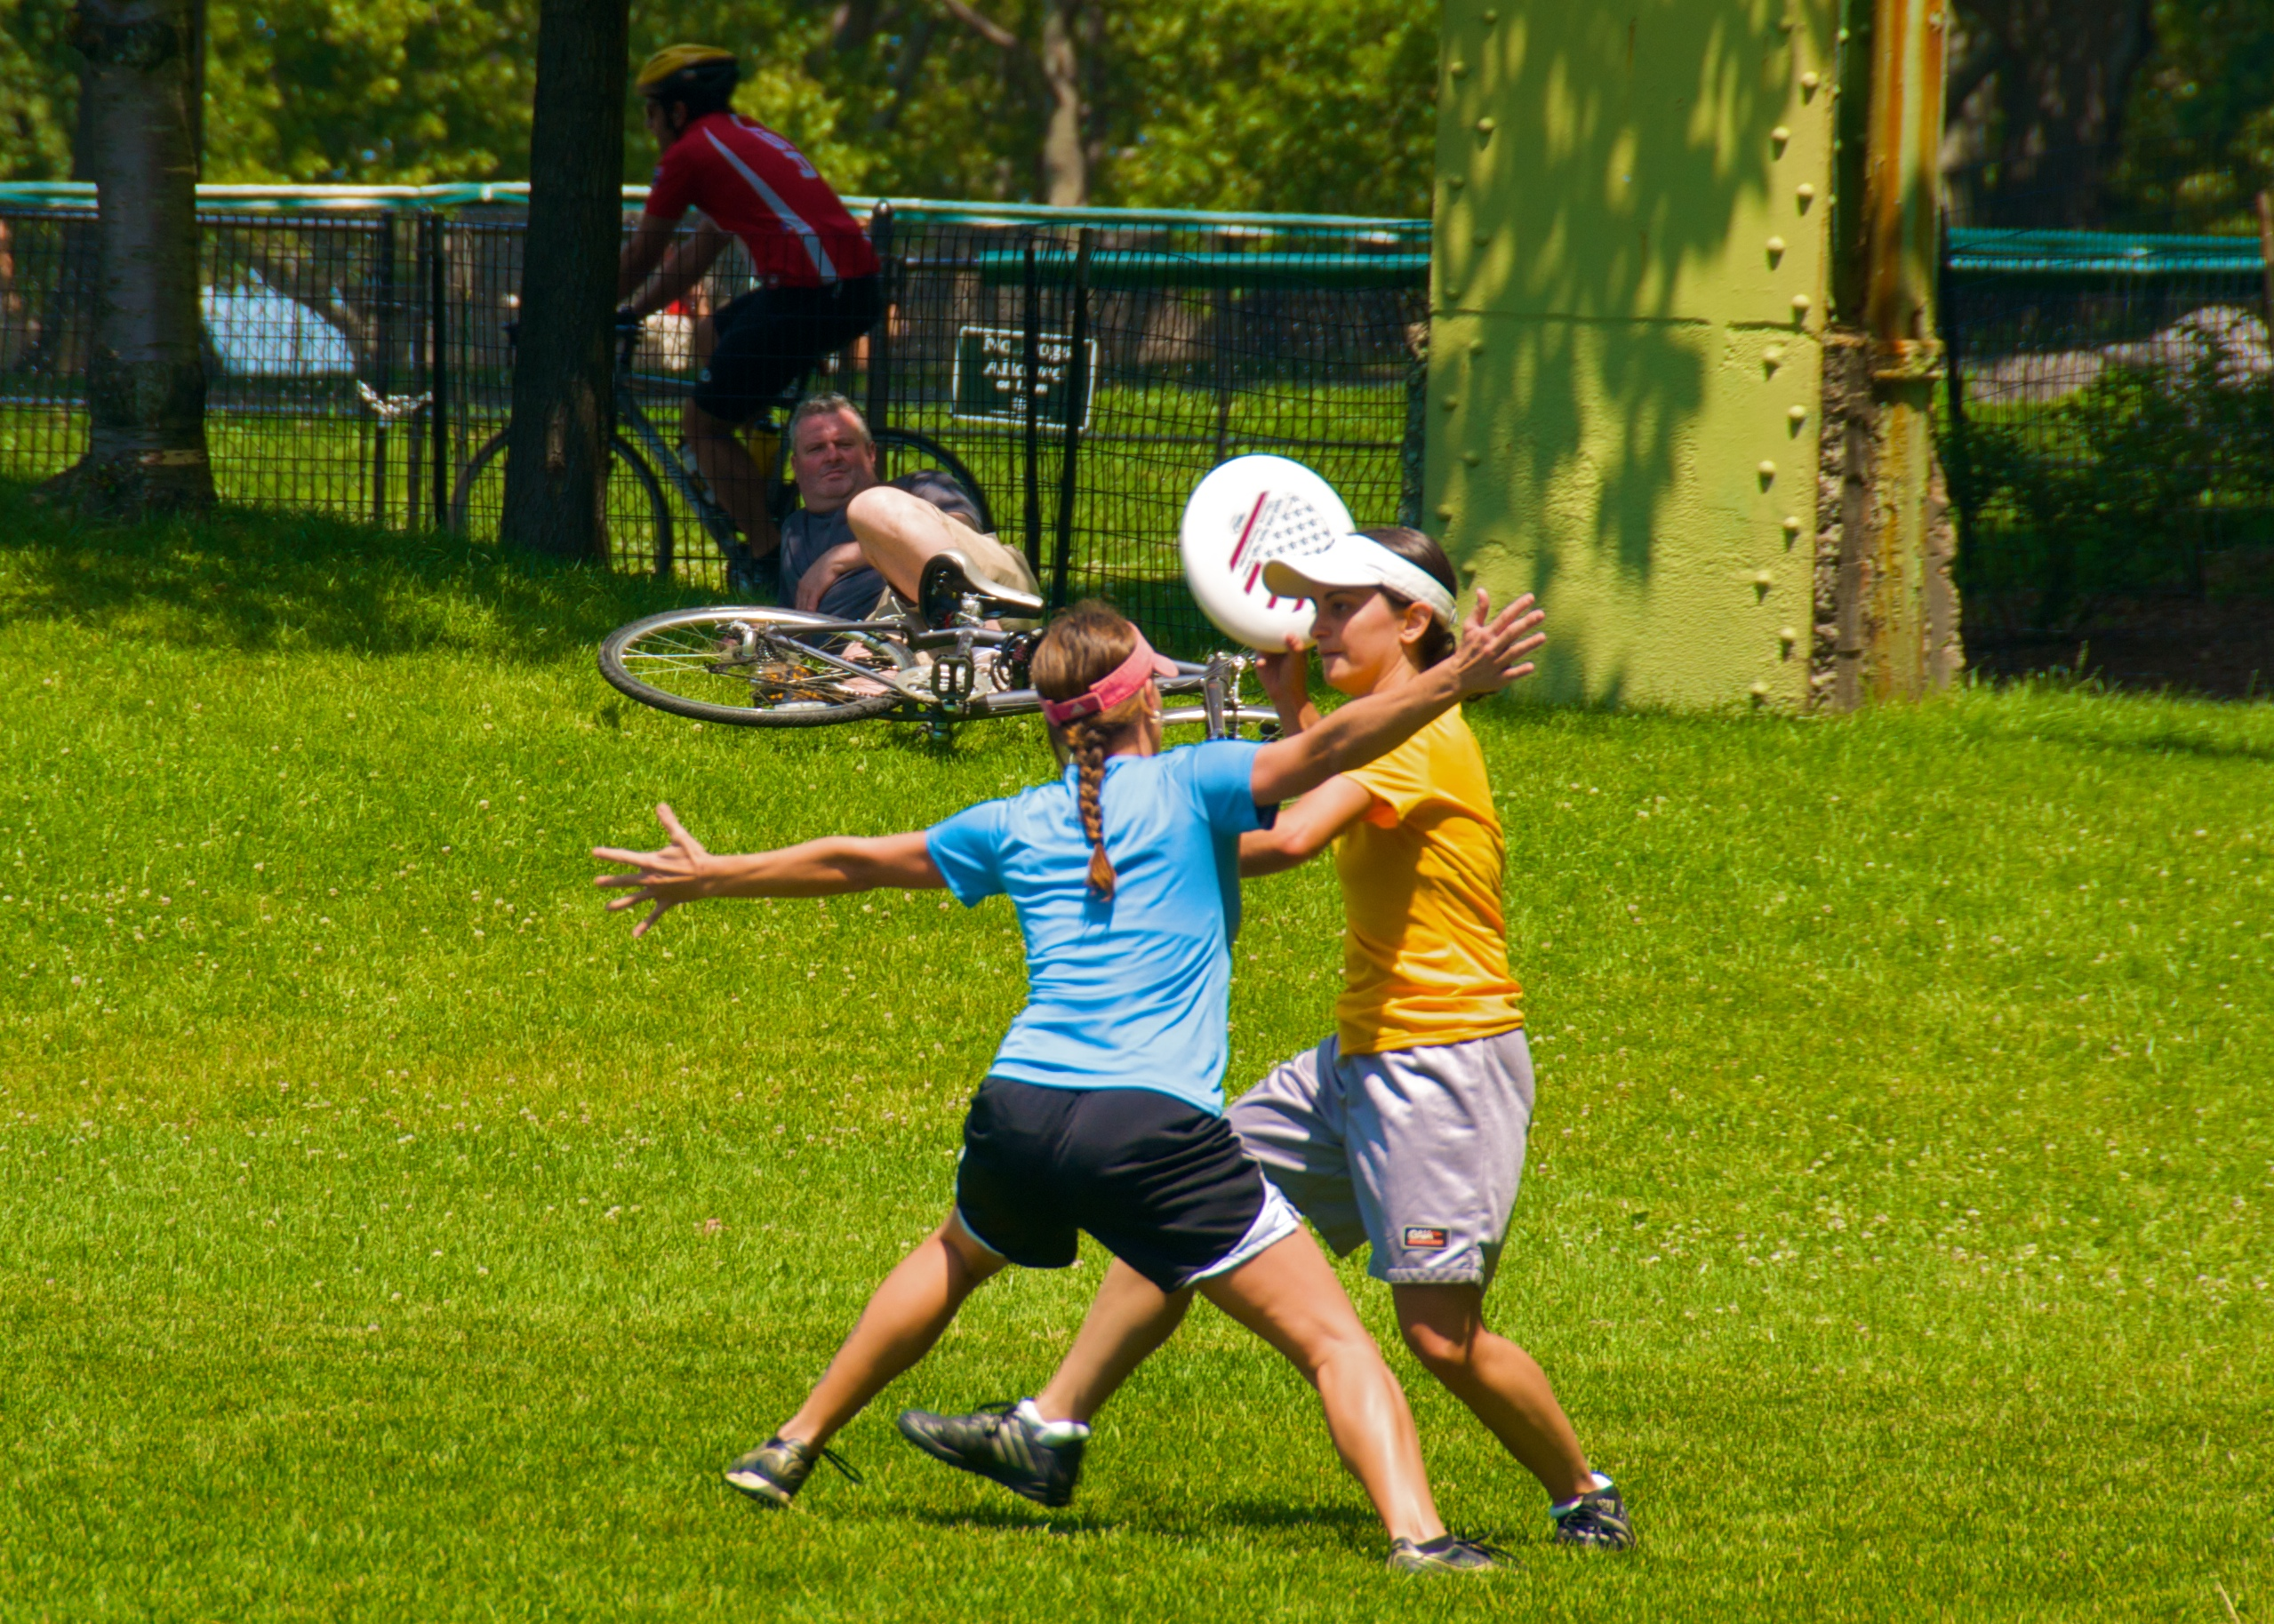 File:Ultimate Frisbee, Jul 2009